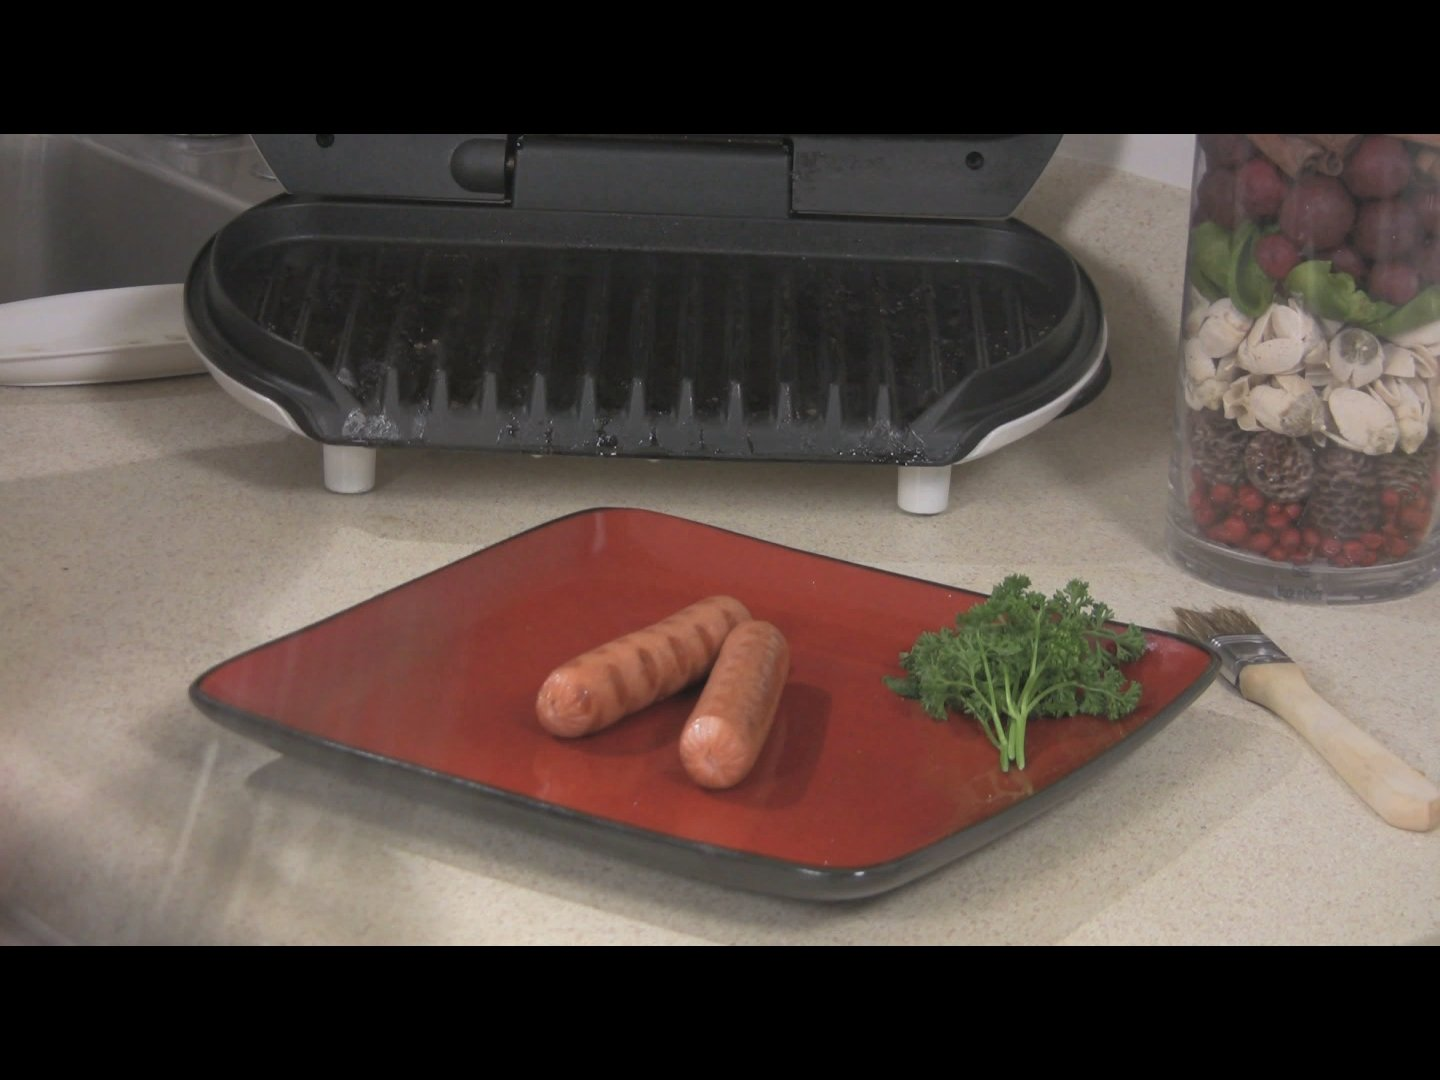 Cooking Hot Dogs on the George Foreman Grill